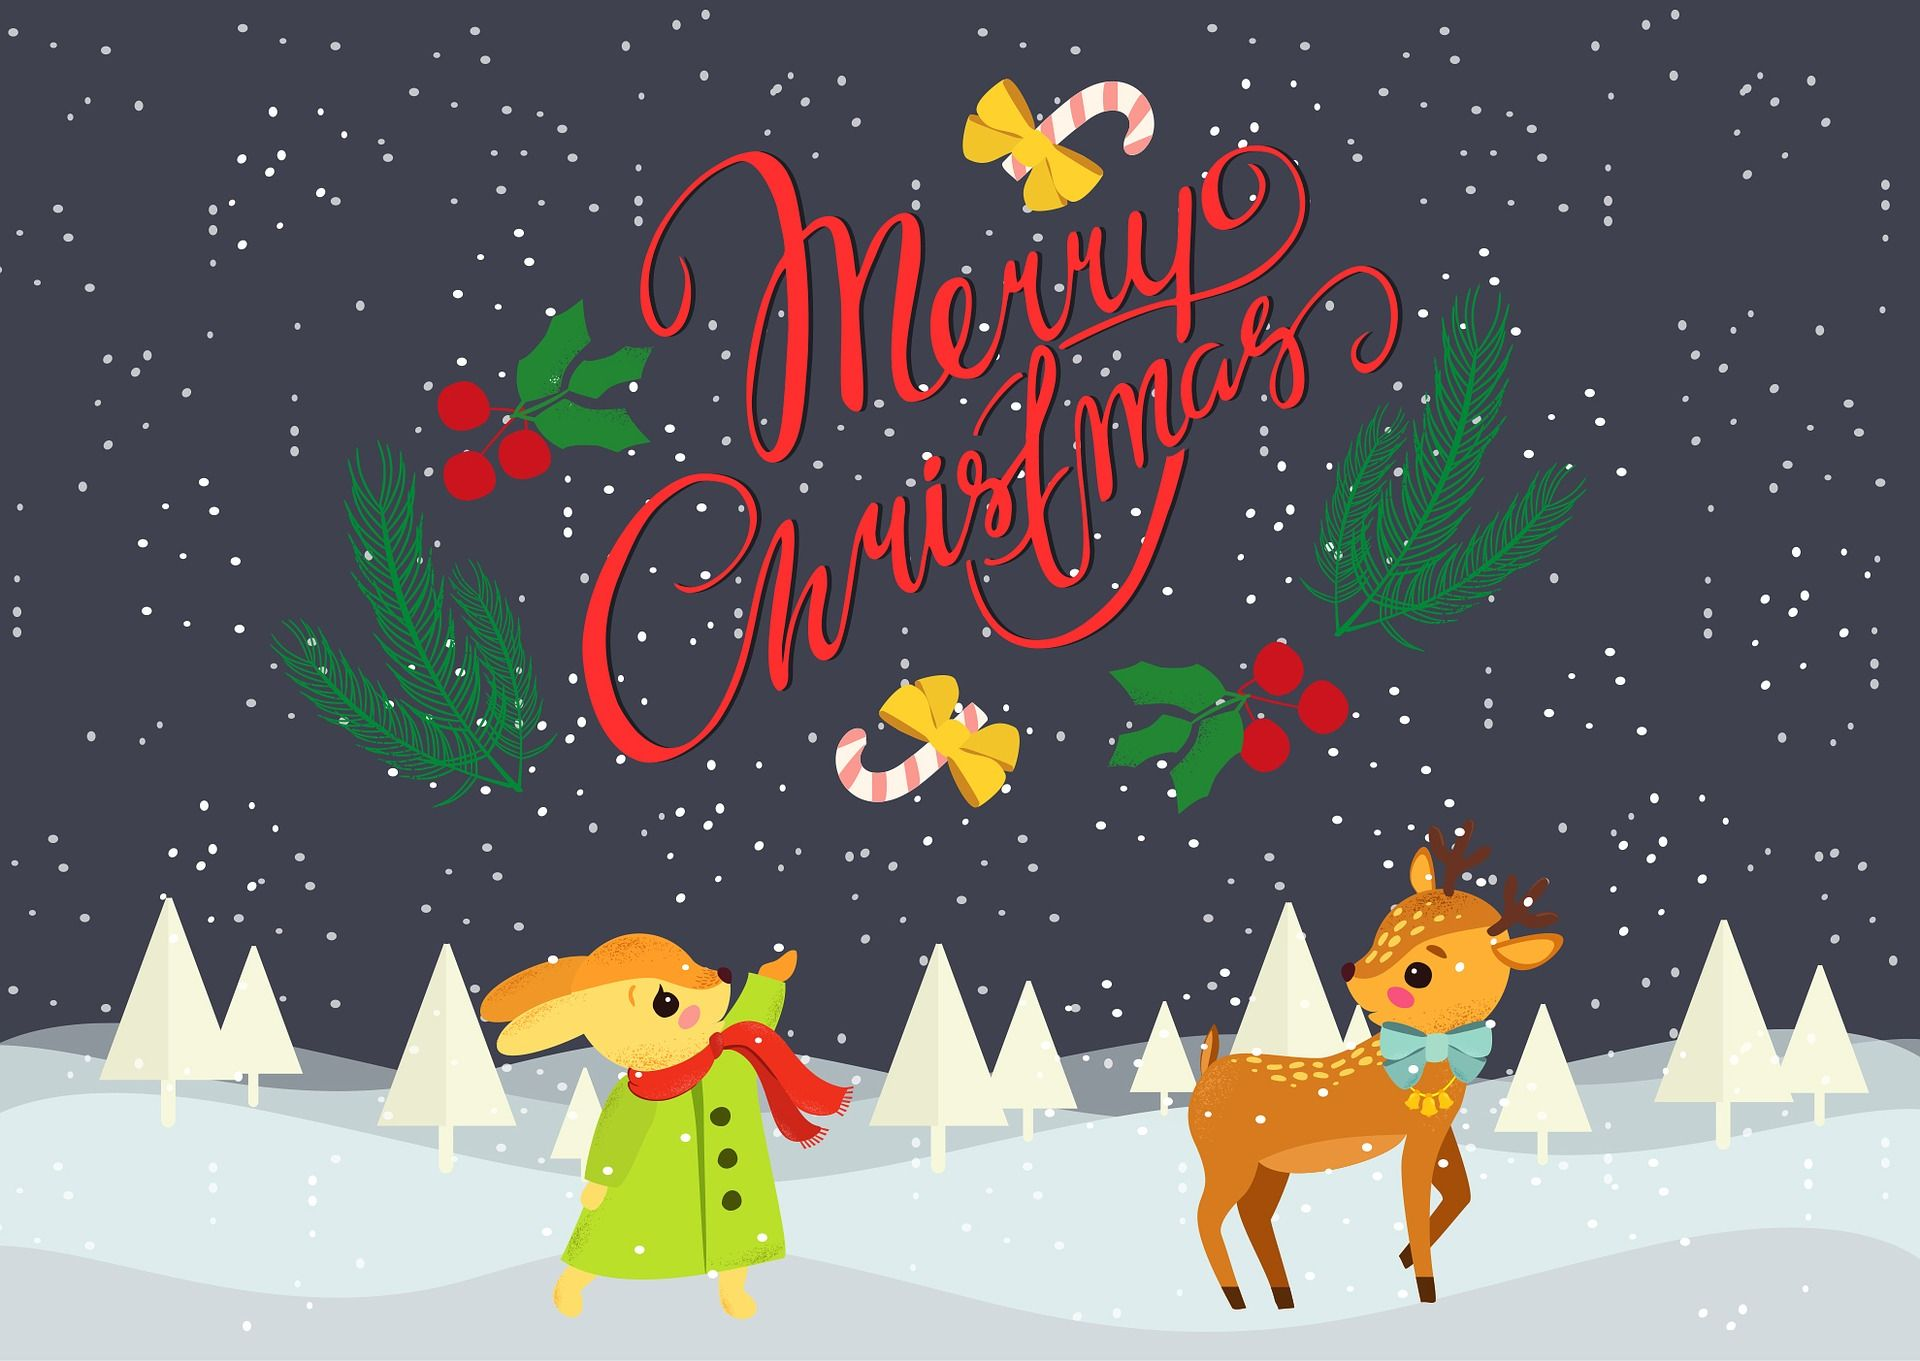 10 Best Merry Christmas Day And Happy New Year Wallpaper Free Download To Use Wel Merry Christmas Images Merry Christmas Images Free Merry Christmas Pictures